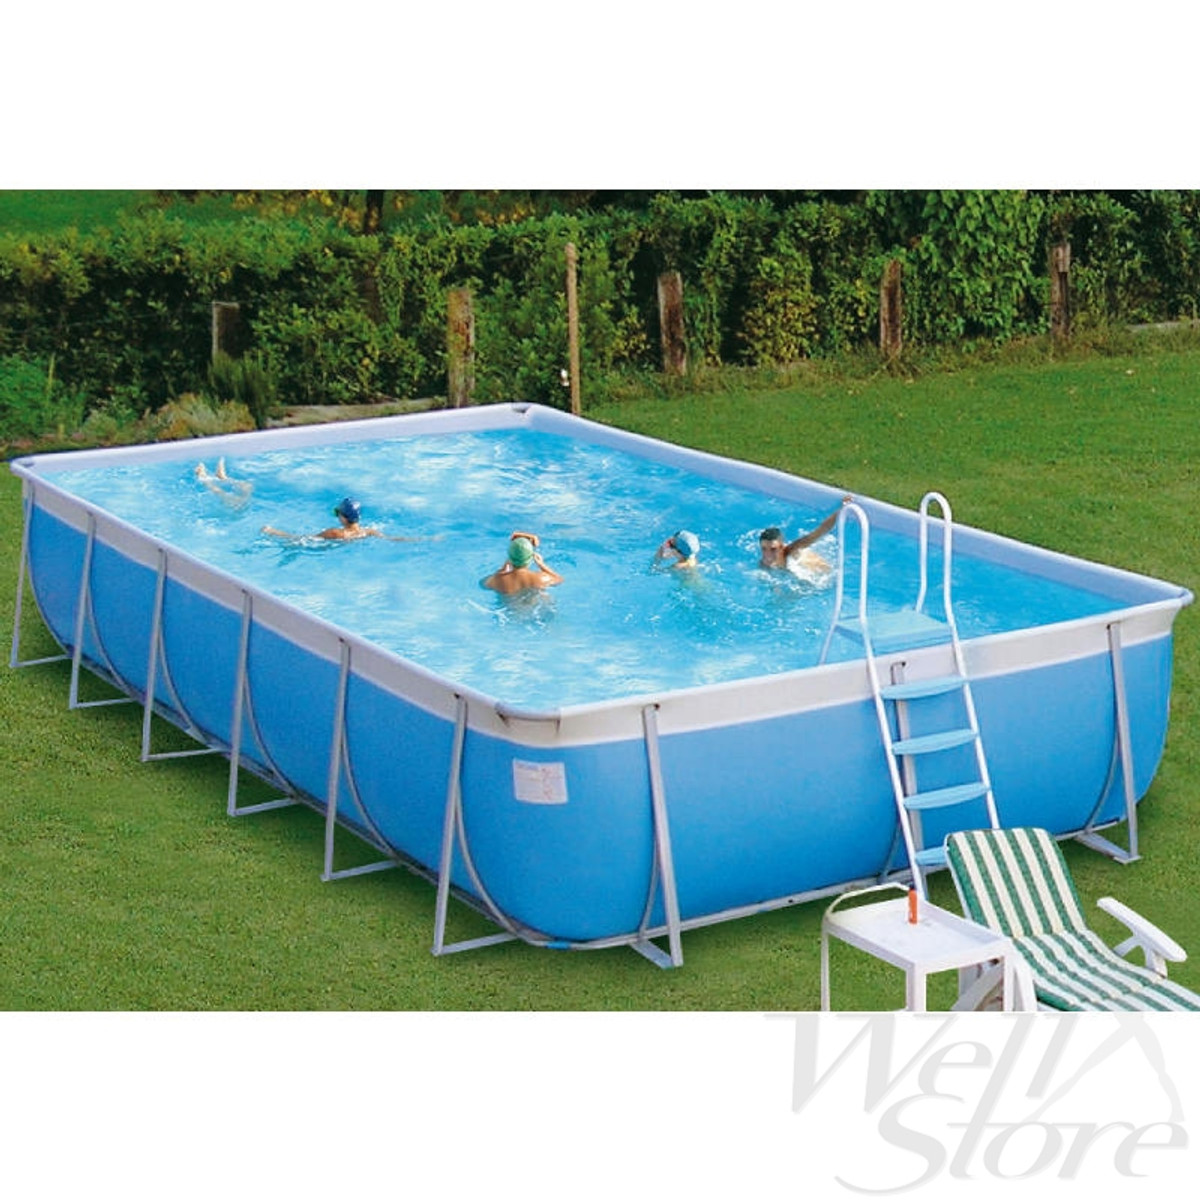 Aboveground portable swimming pool for school or for Portable pool